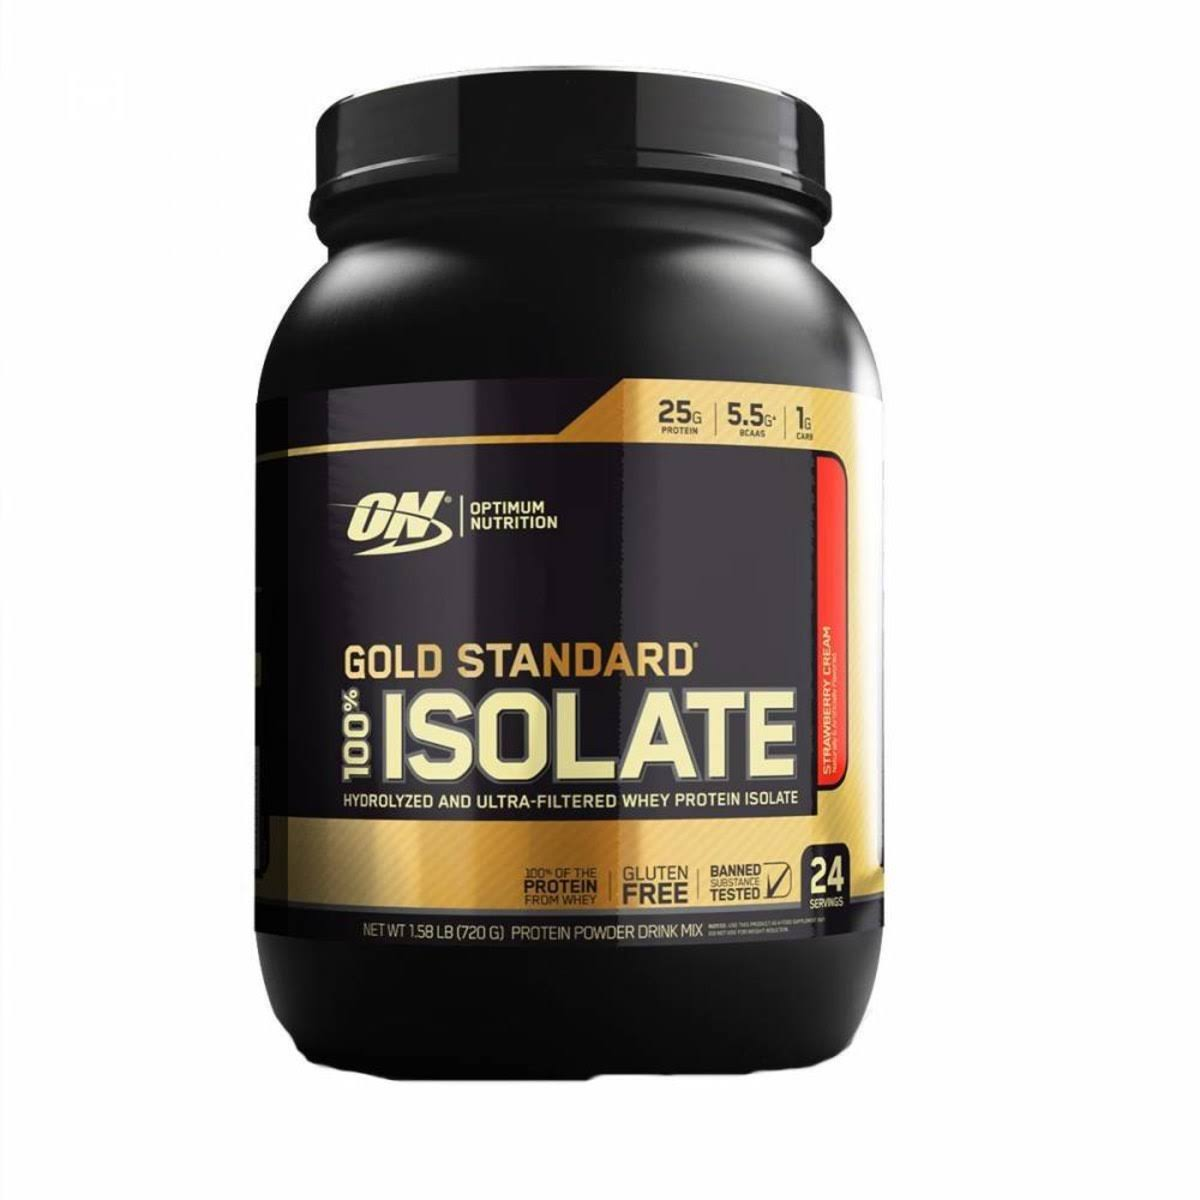 Optimum Nutrition Gold Standard Protein Powder Drink Mix, Chocolate Bliss, 100% Isolate - 1.64 lb